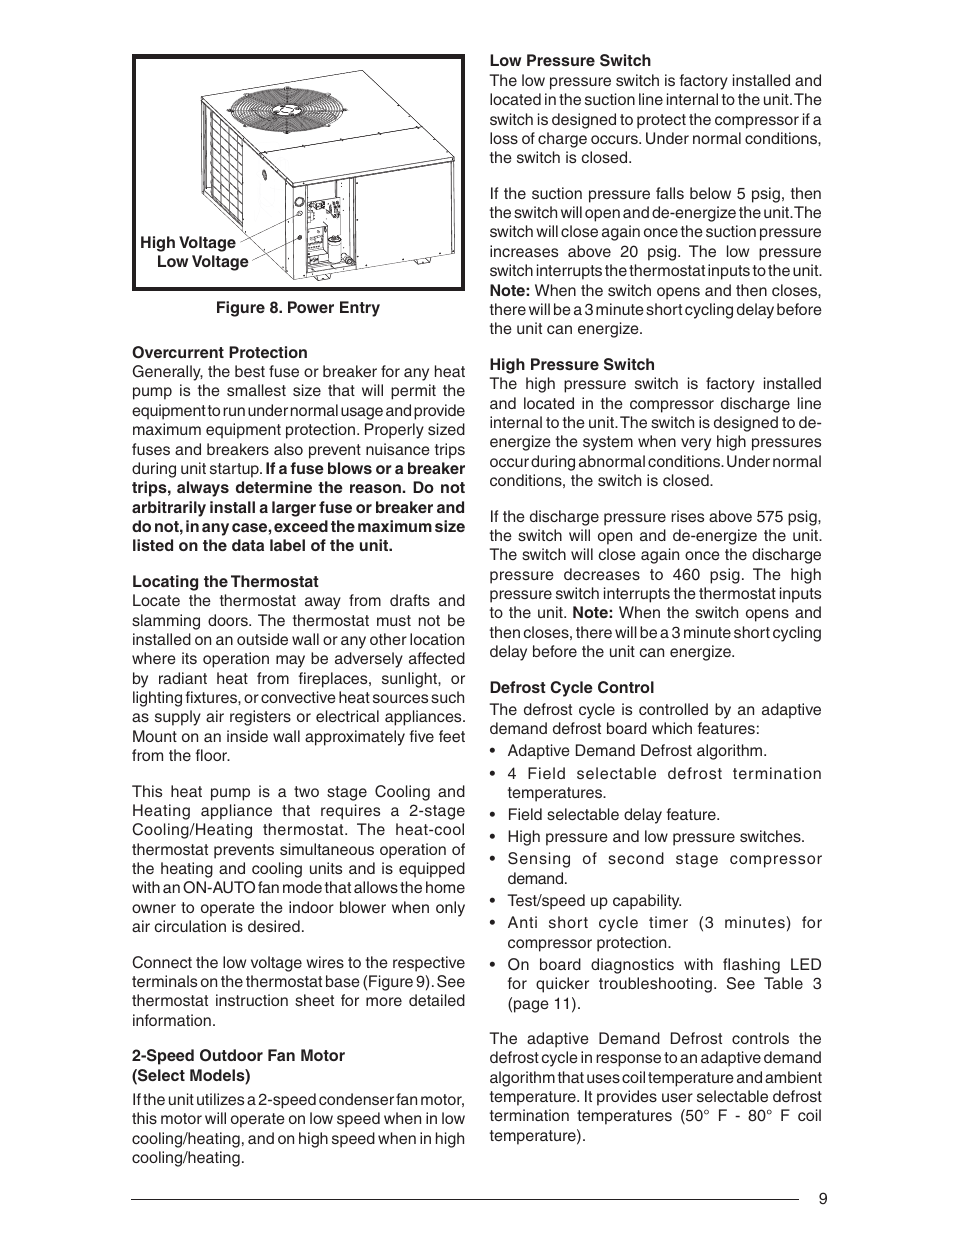 Outdoor Low Voltage Wire As Well As Low Voltage Wiring Heat Pump For A